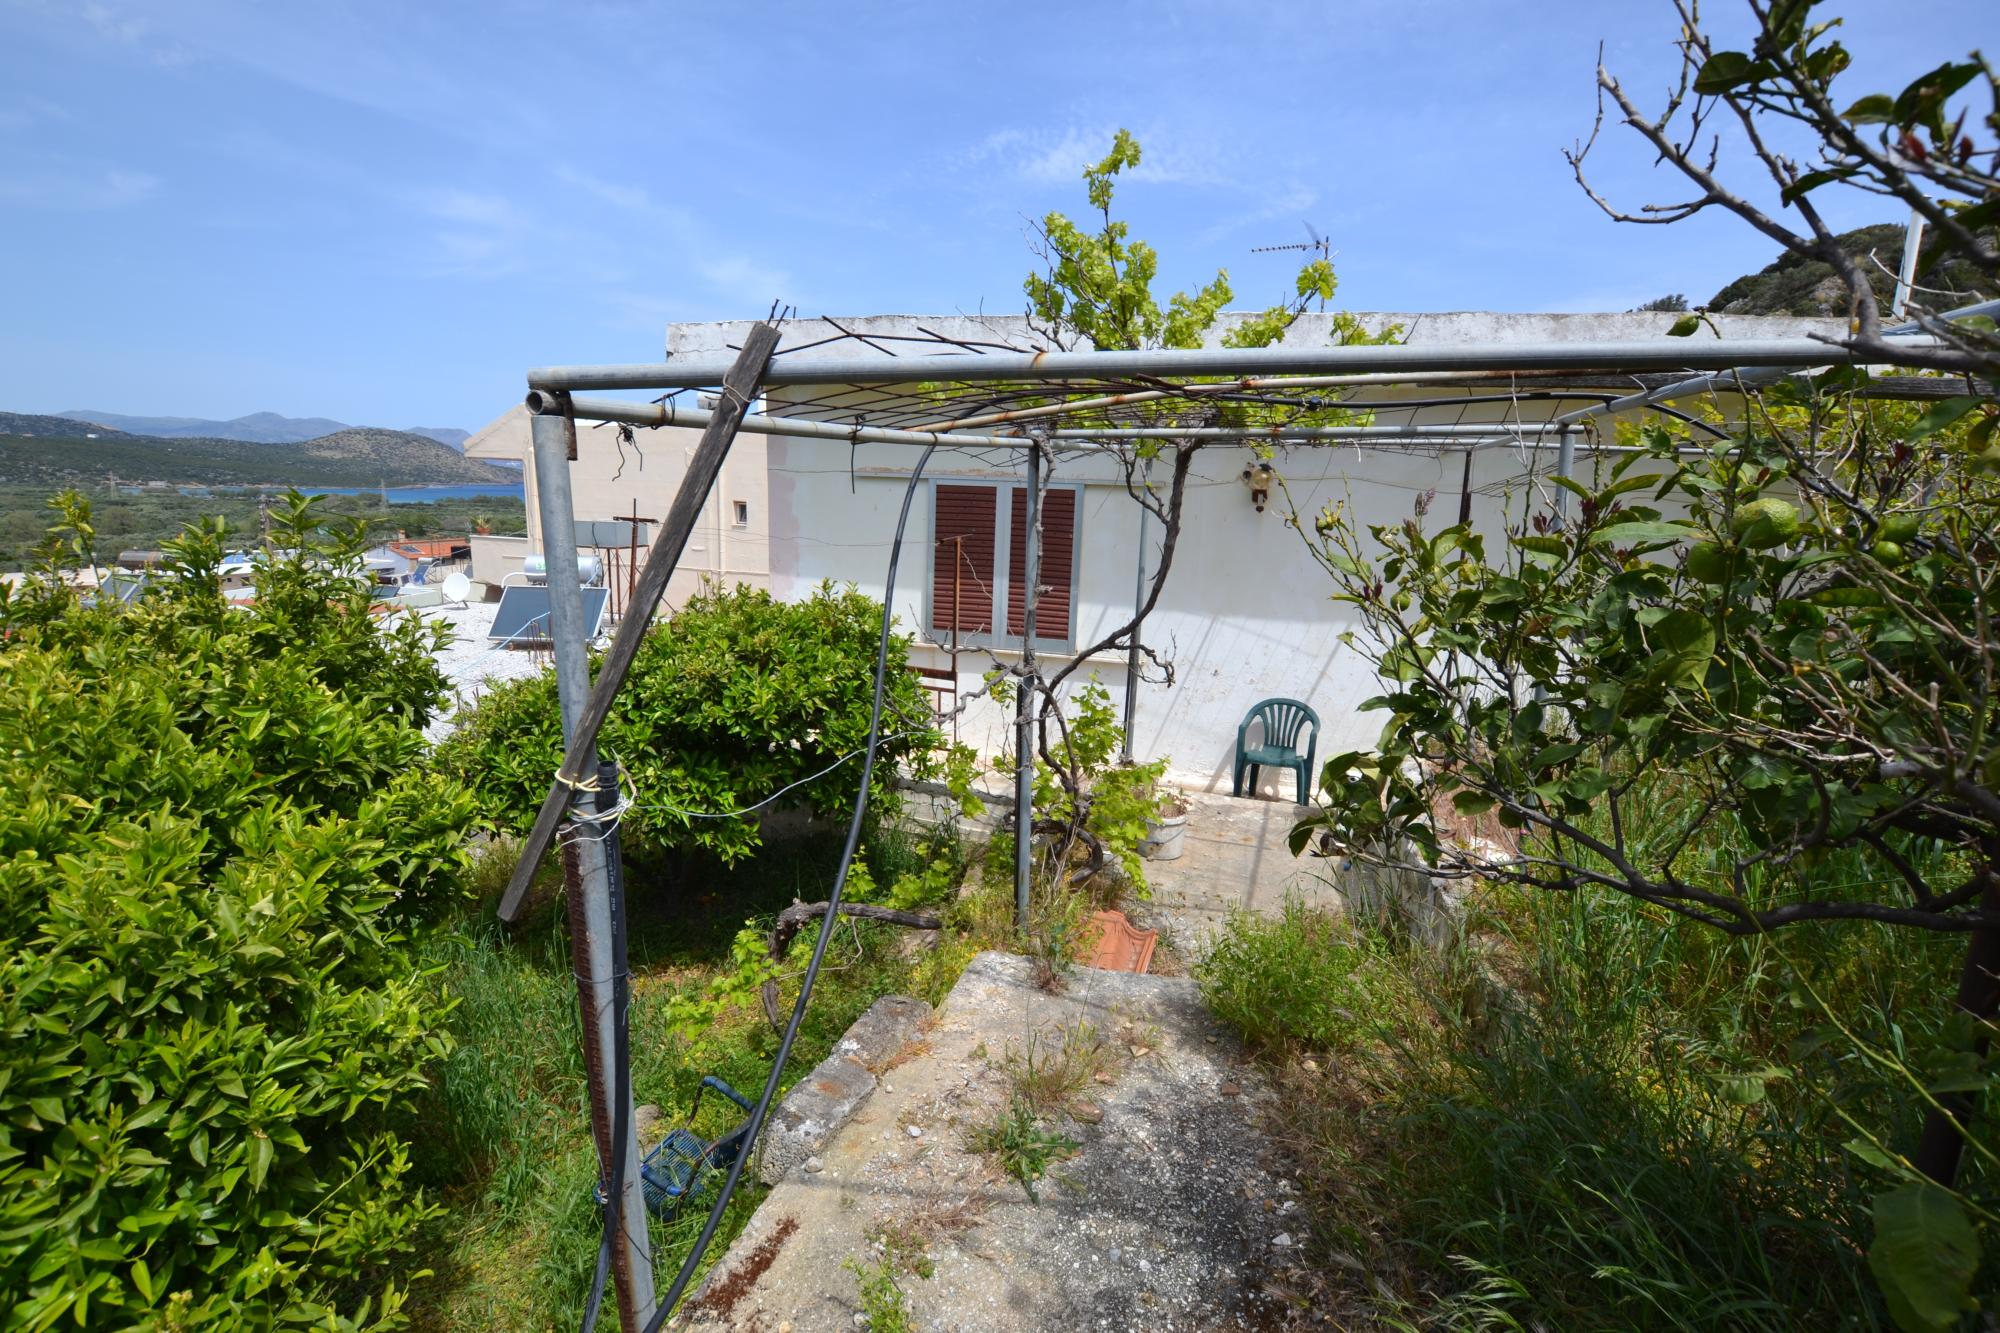 Detached house for reno with sea views on private land. Possible to expand.